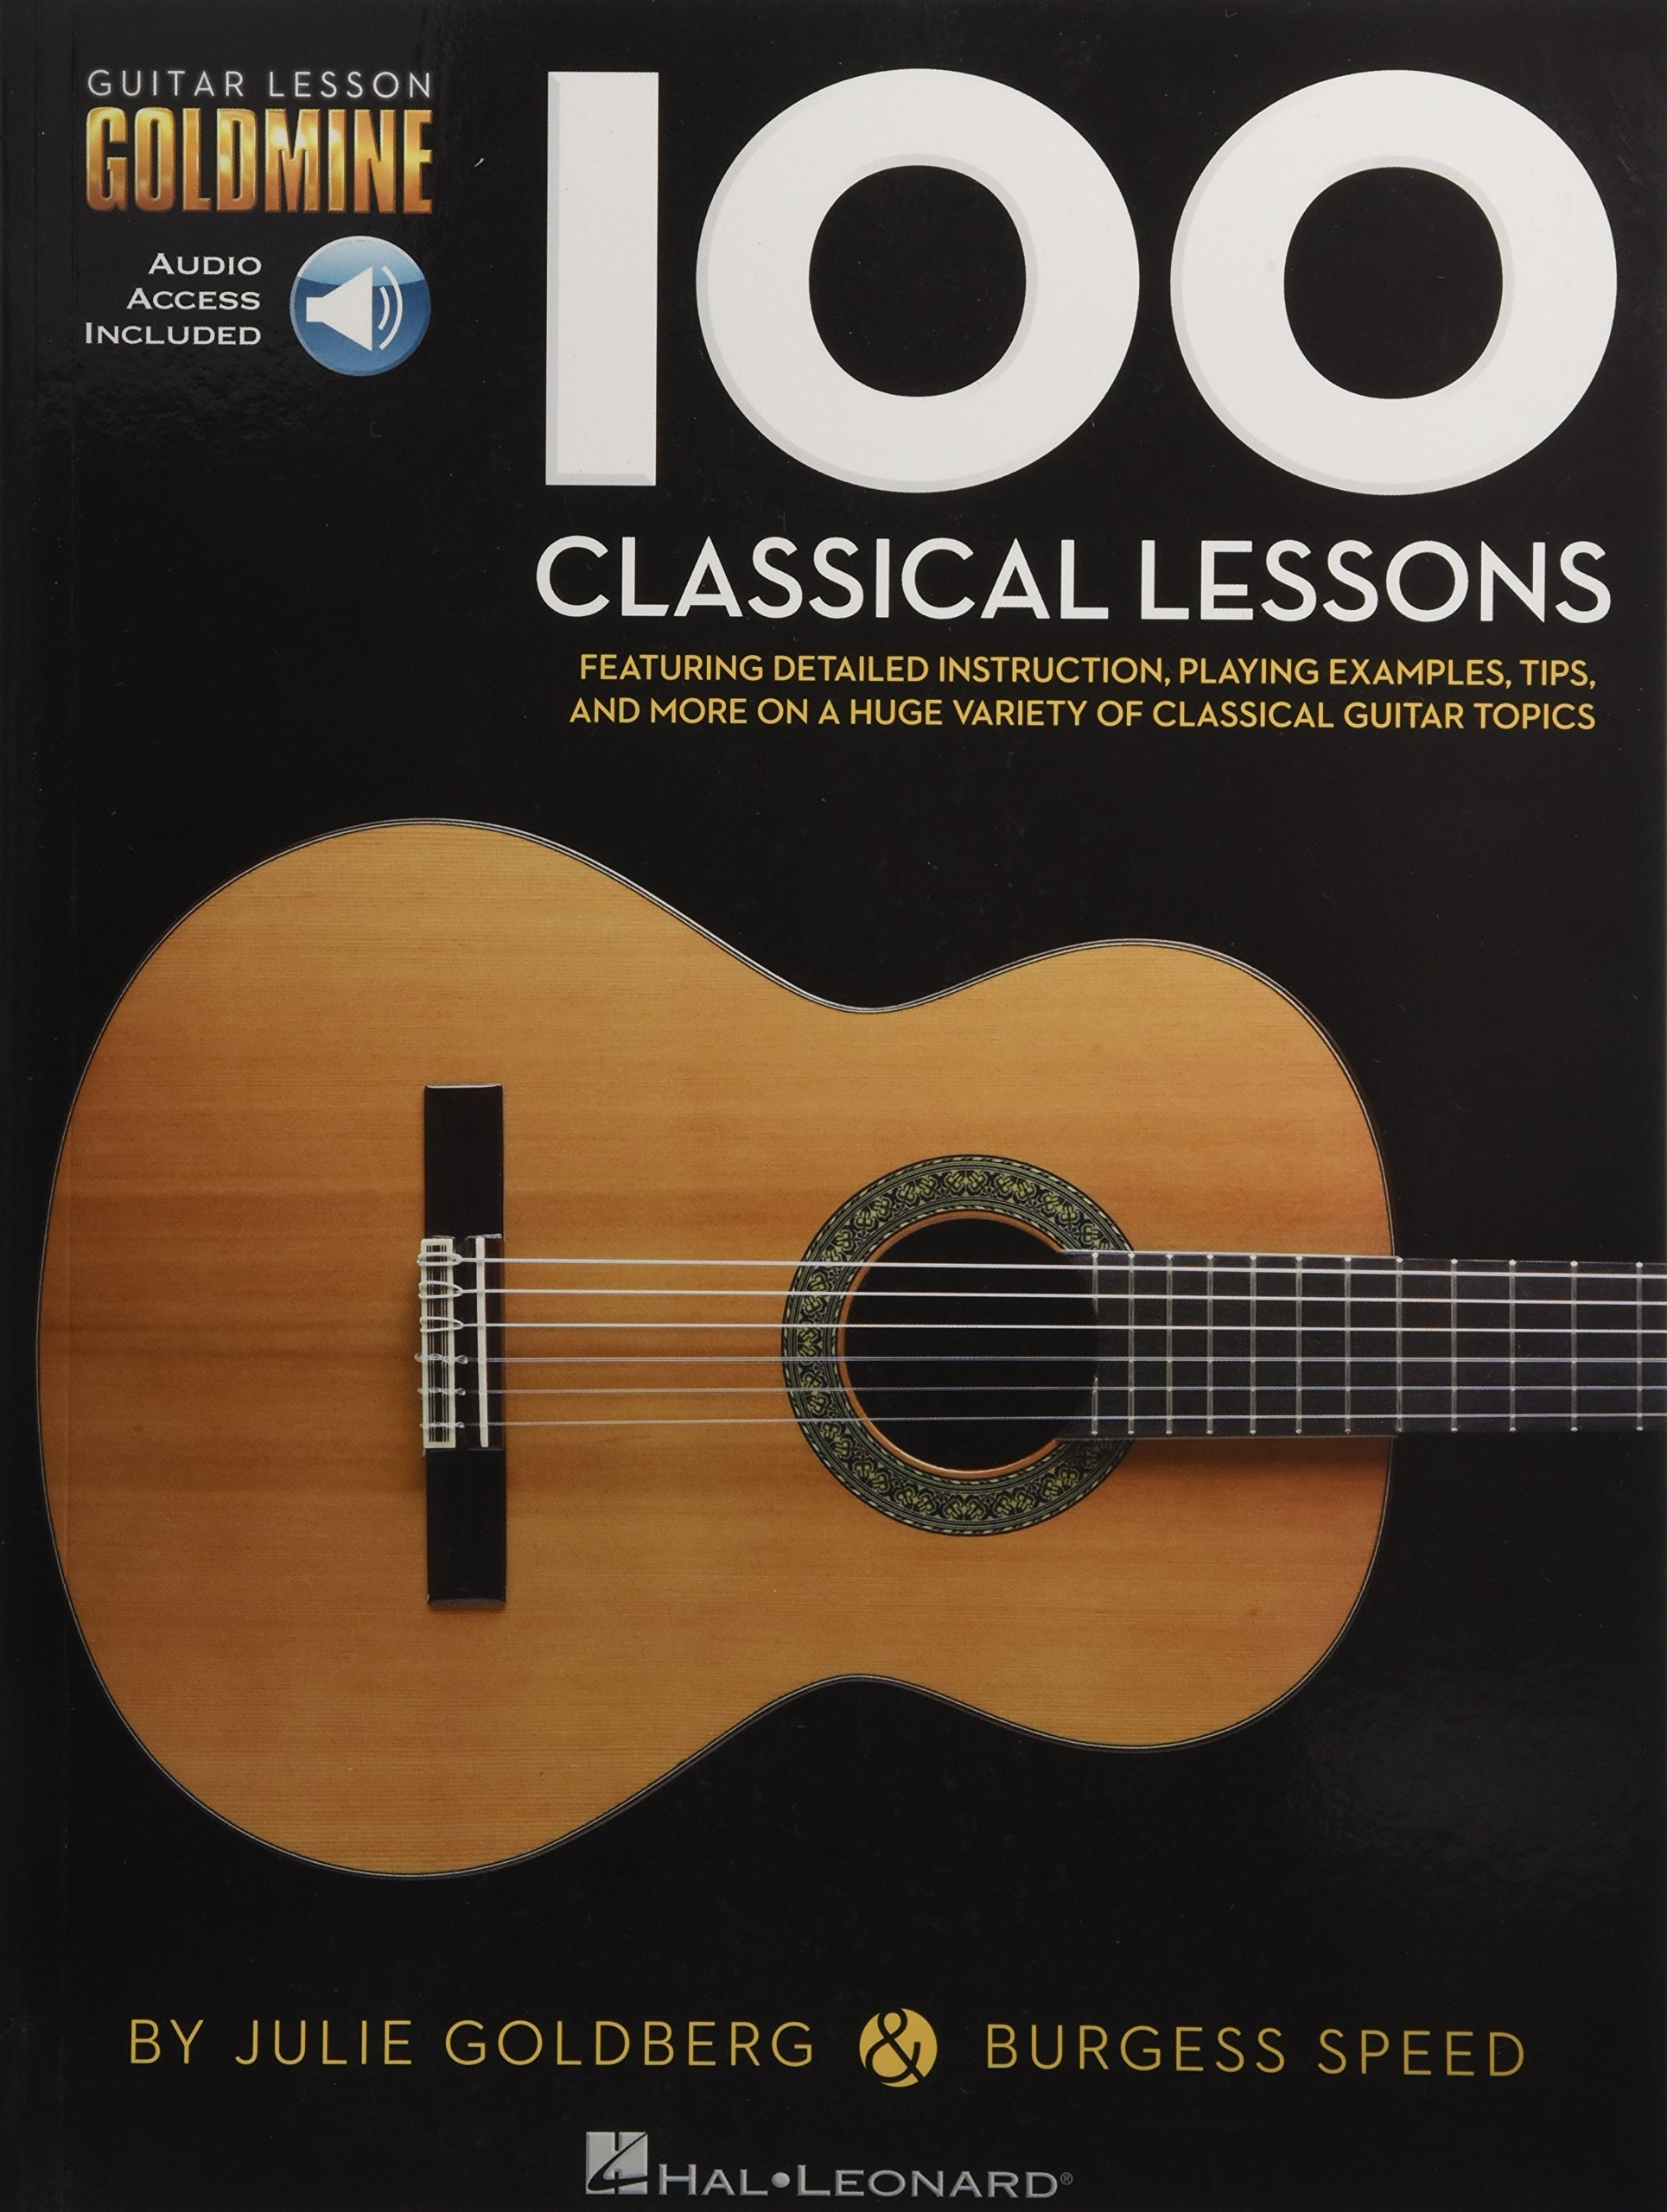 100 Classical Lessons: Guitar Lesson Goldmine Series: Burgess Speed, Julie  Goldberg: 9781495020087: Amazon.com: Books